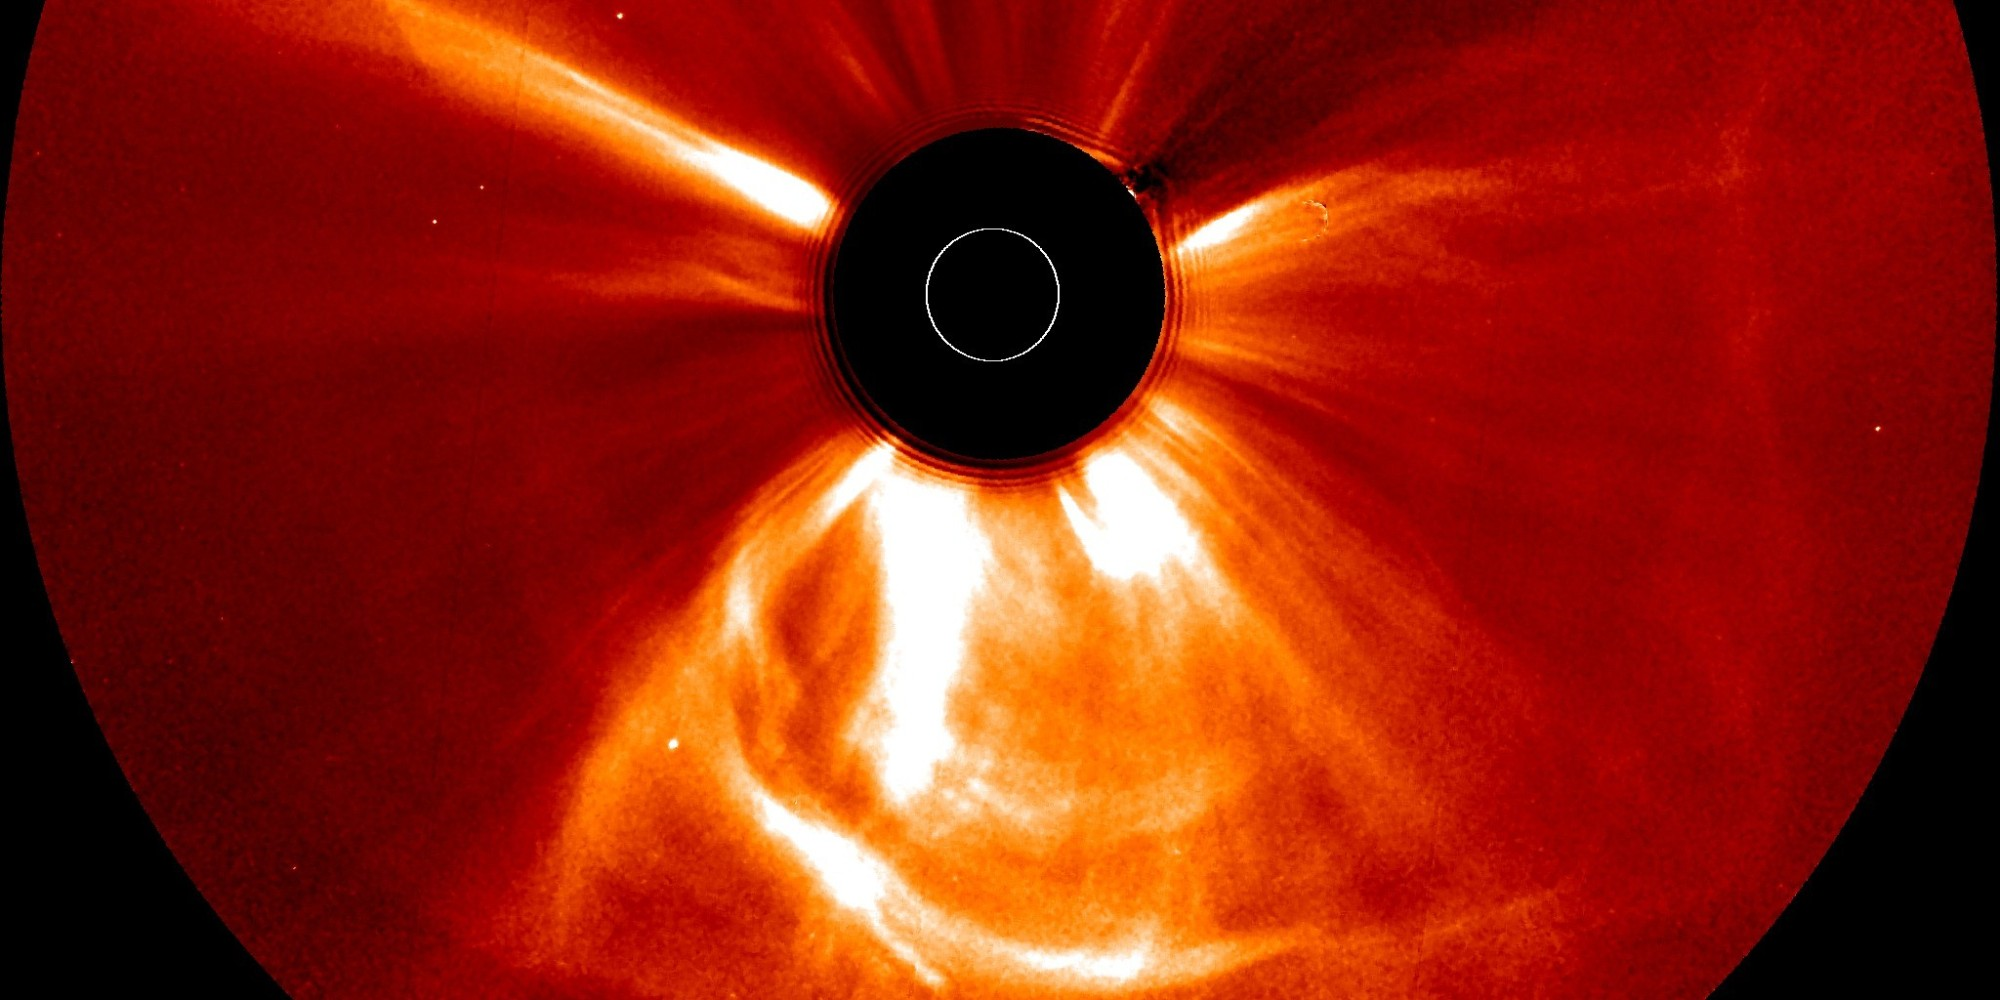 Solar 'Superstorm' In 2012 Linked To Collision Of Vast Sun ...